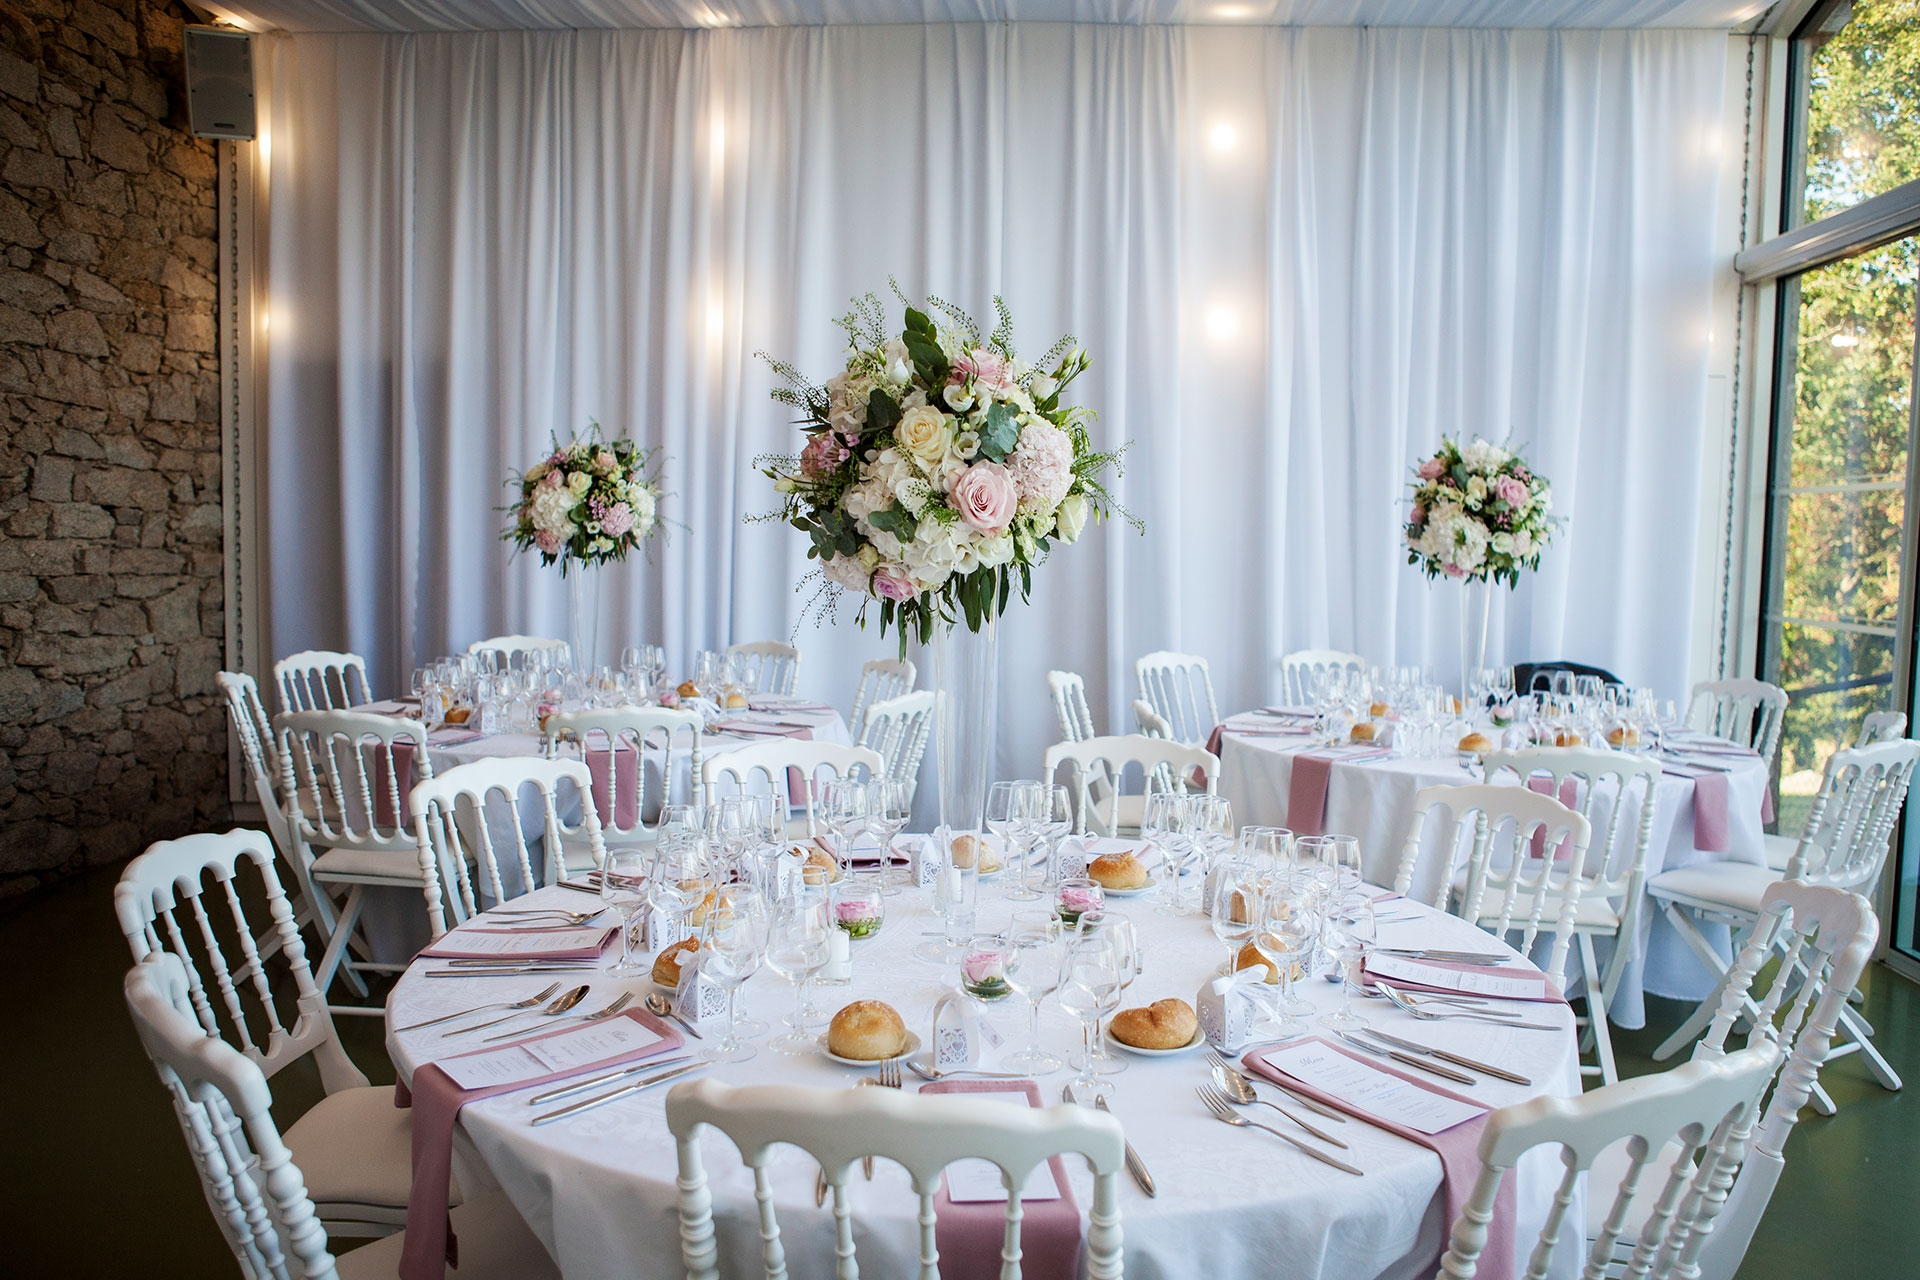 particuliers-evenements-mariage-oui-tiphaine&rudy-60